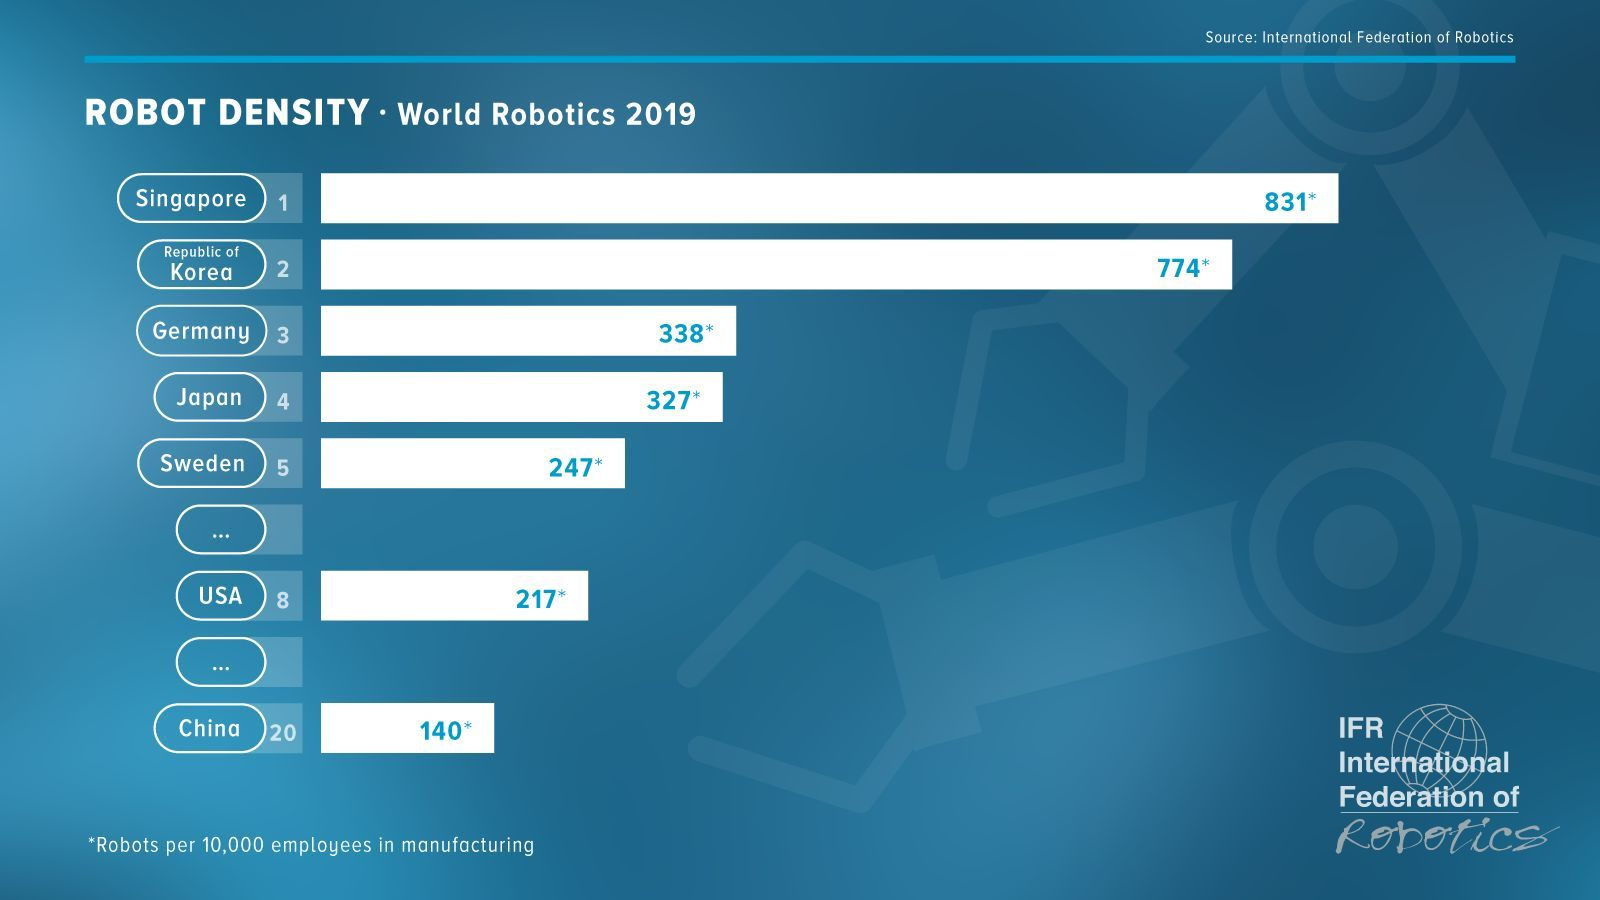 Robot Density - World Robotics 2019 - image courtesy of International Federation of Robotics.